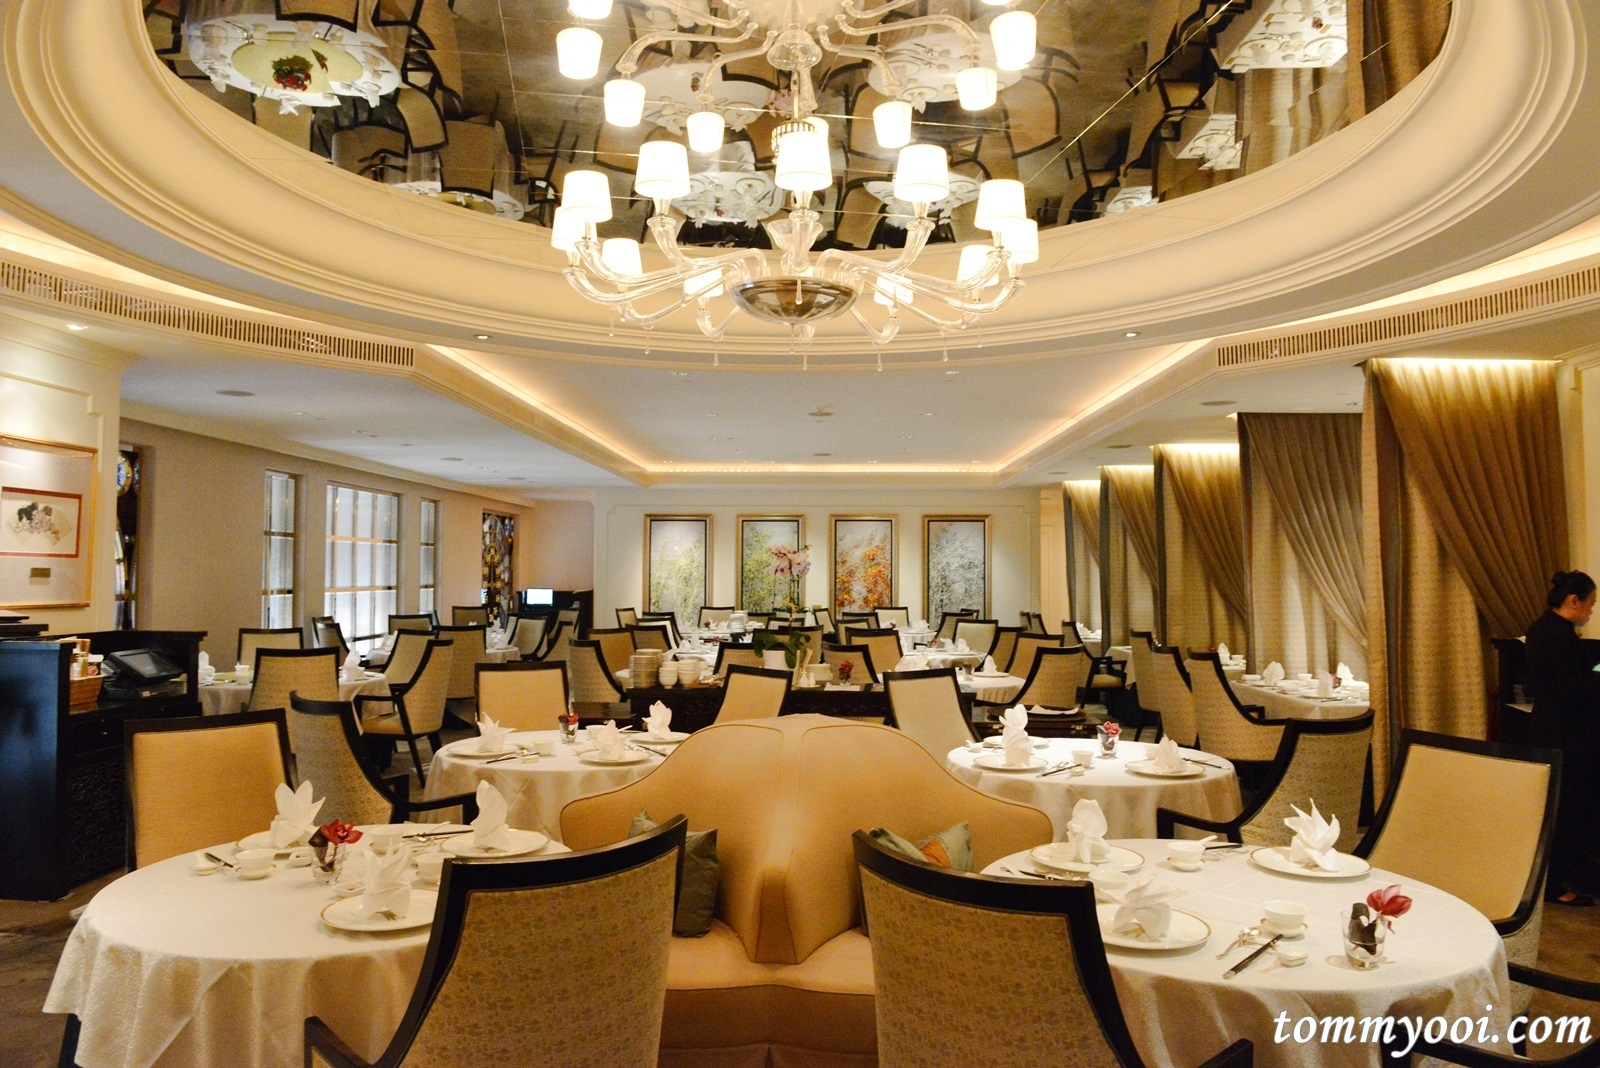 http://images.getcardable.com/sg/images/es/yan-ting-the-st-regis.jpg